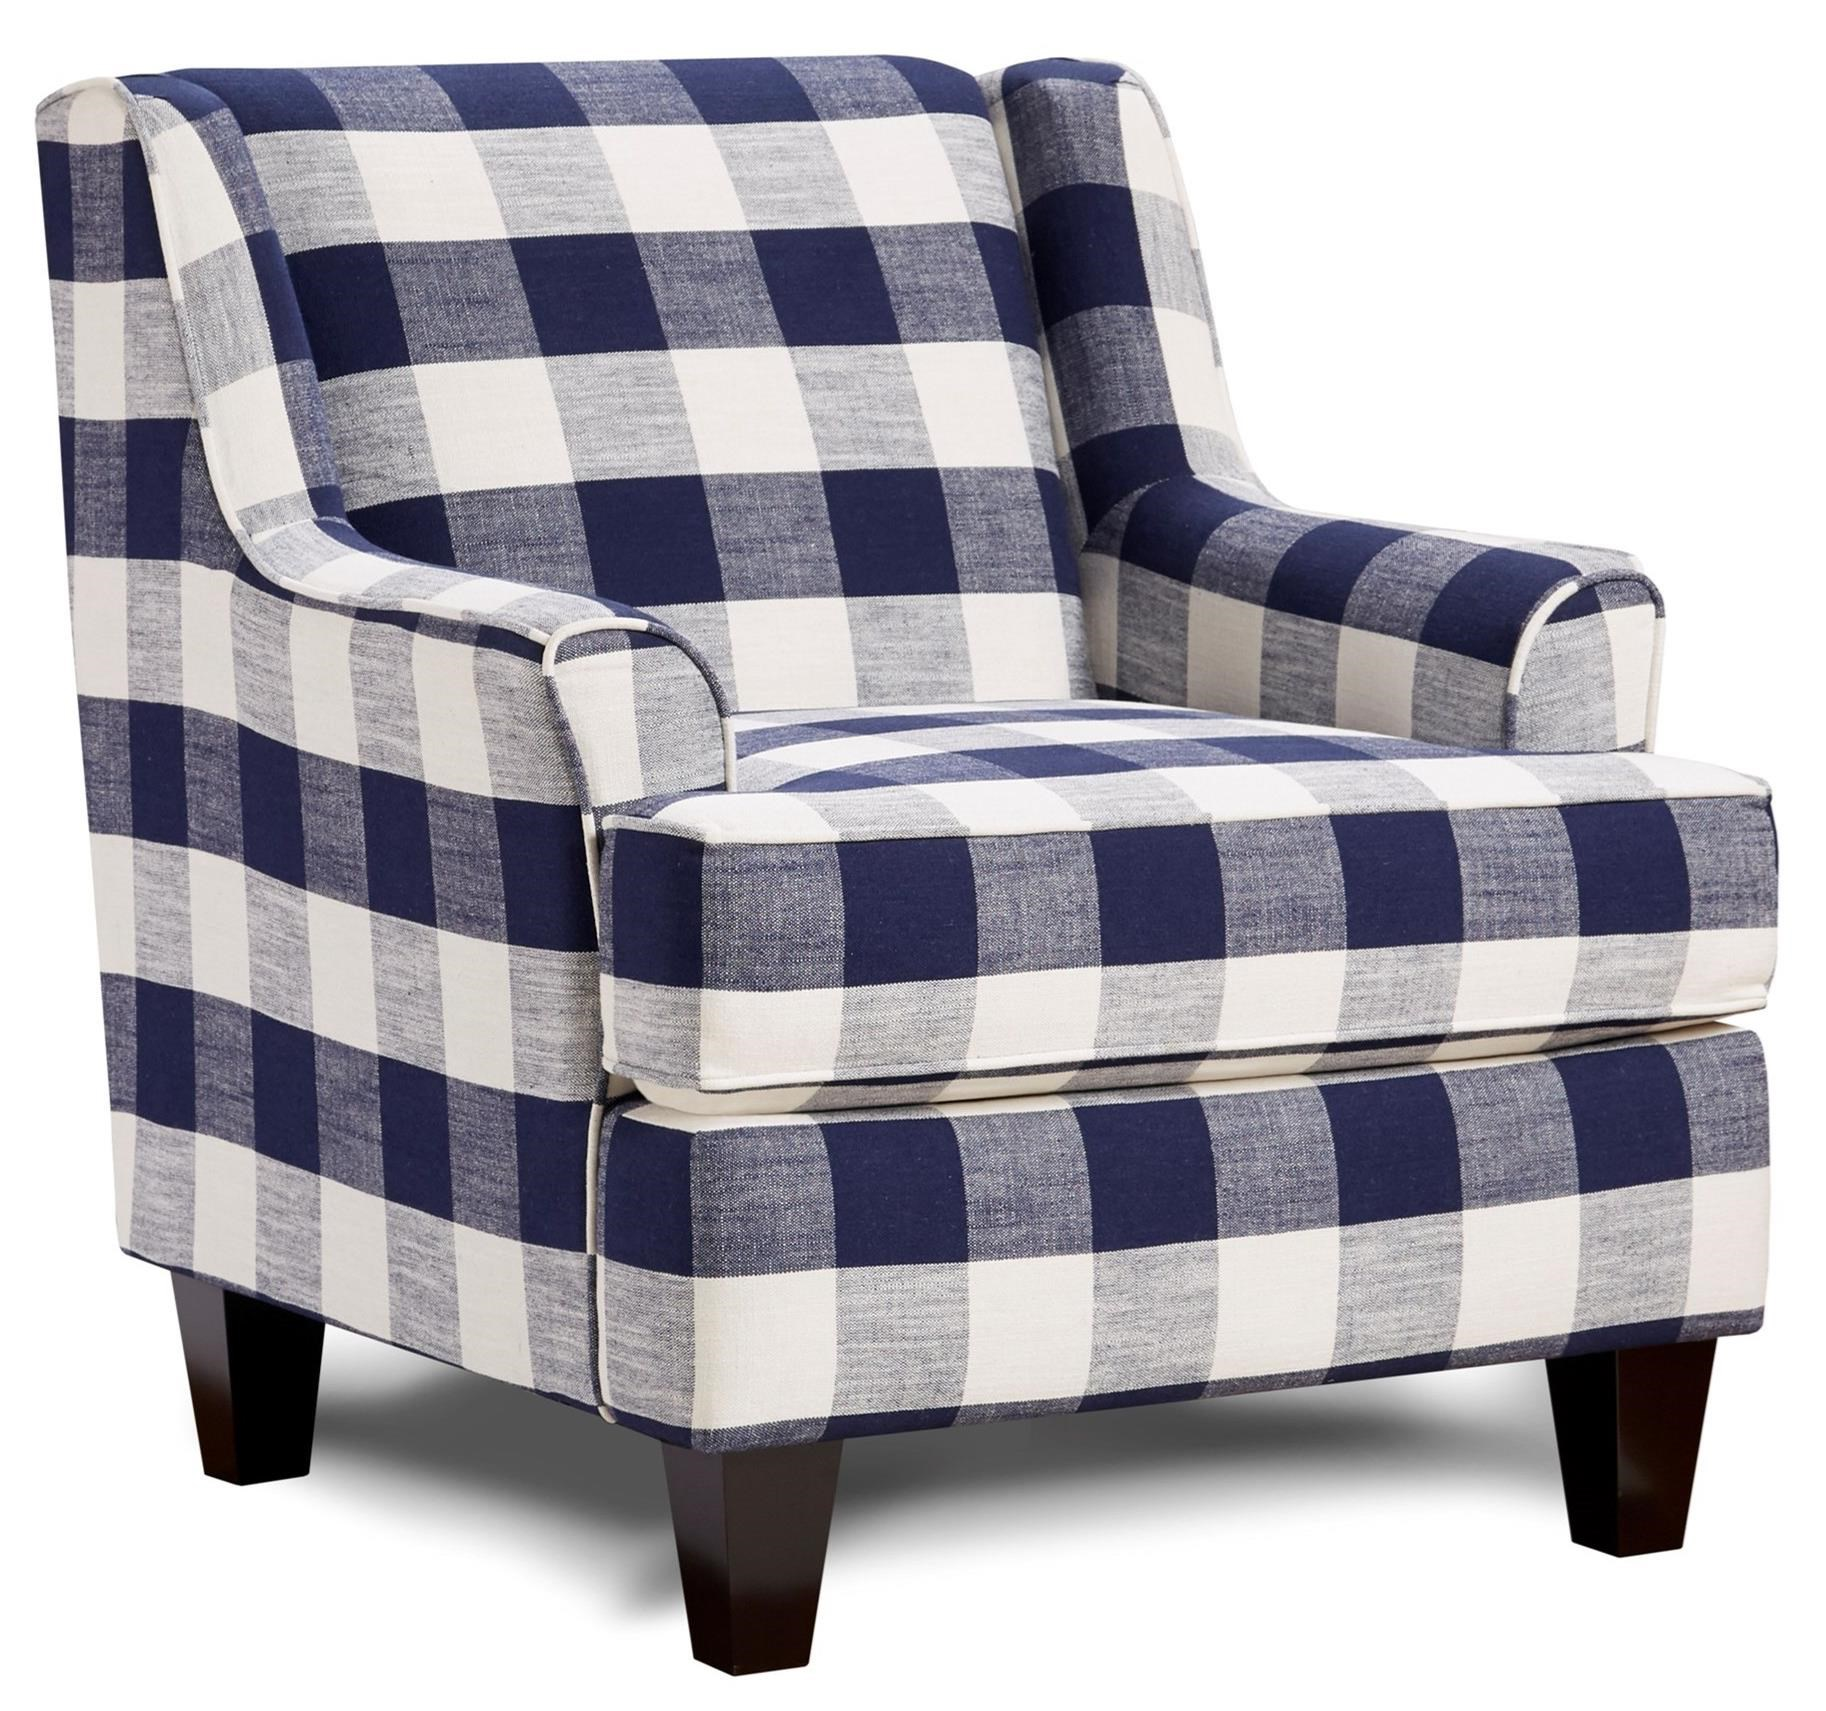 340 Upholstered Chair by Fusion Furniture at Hudson's Furniture